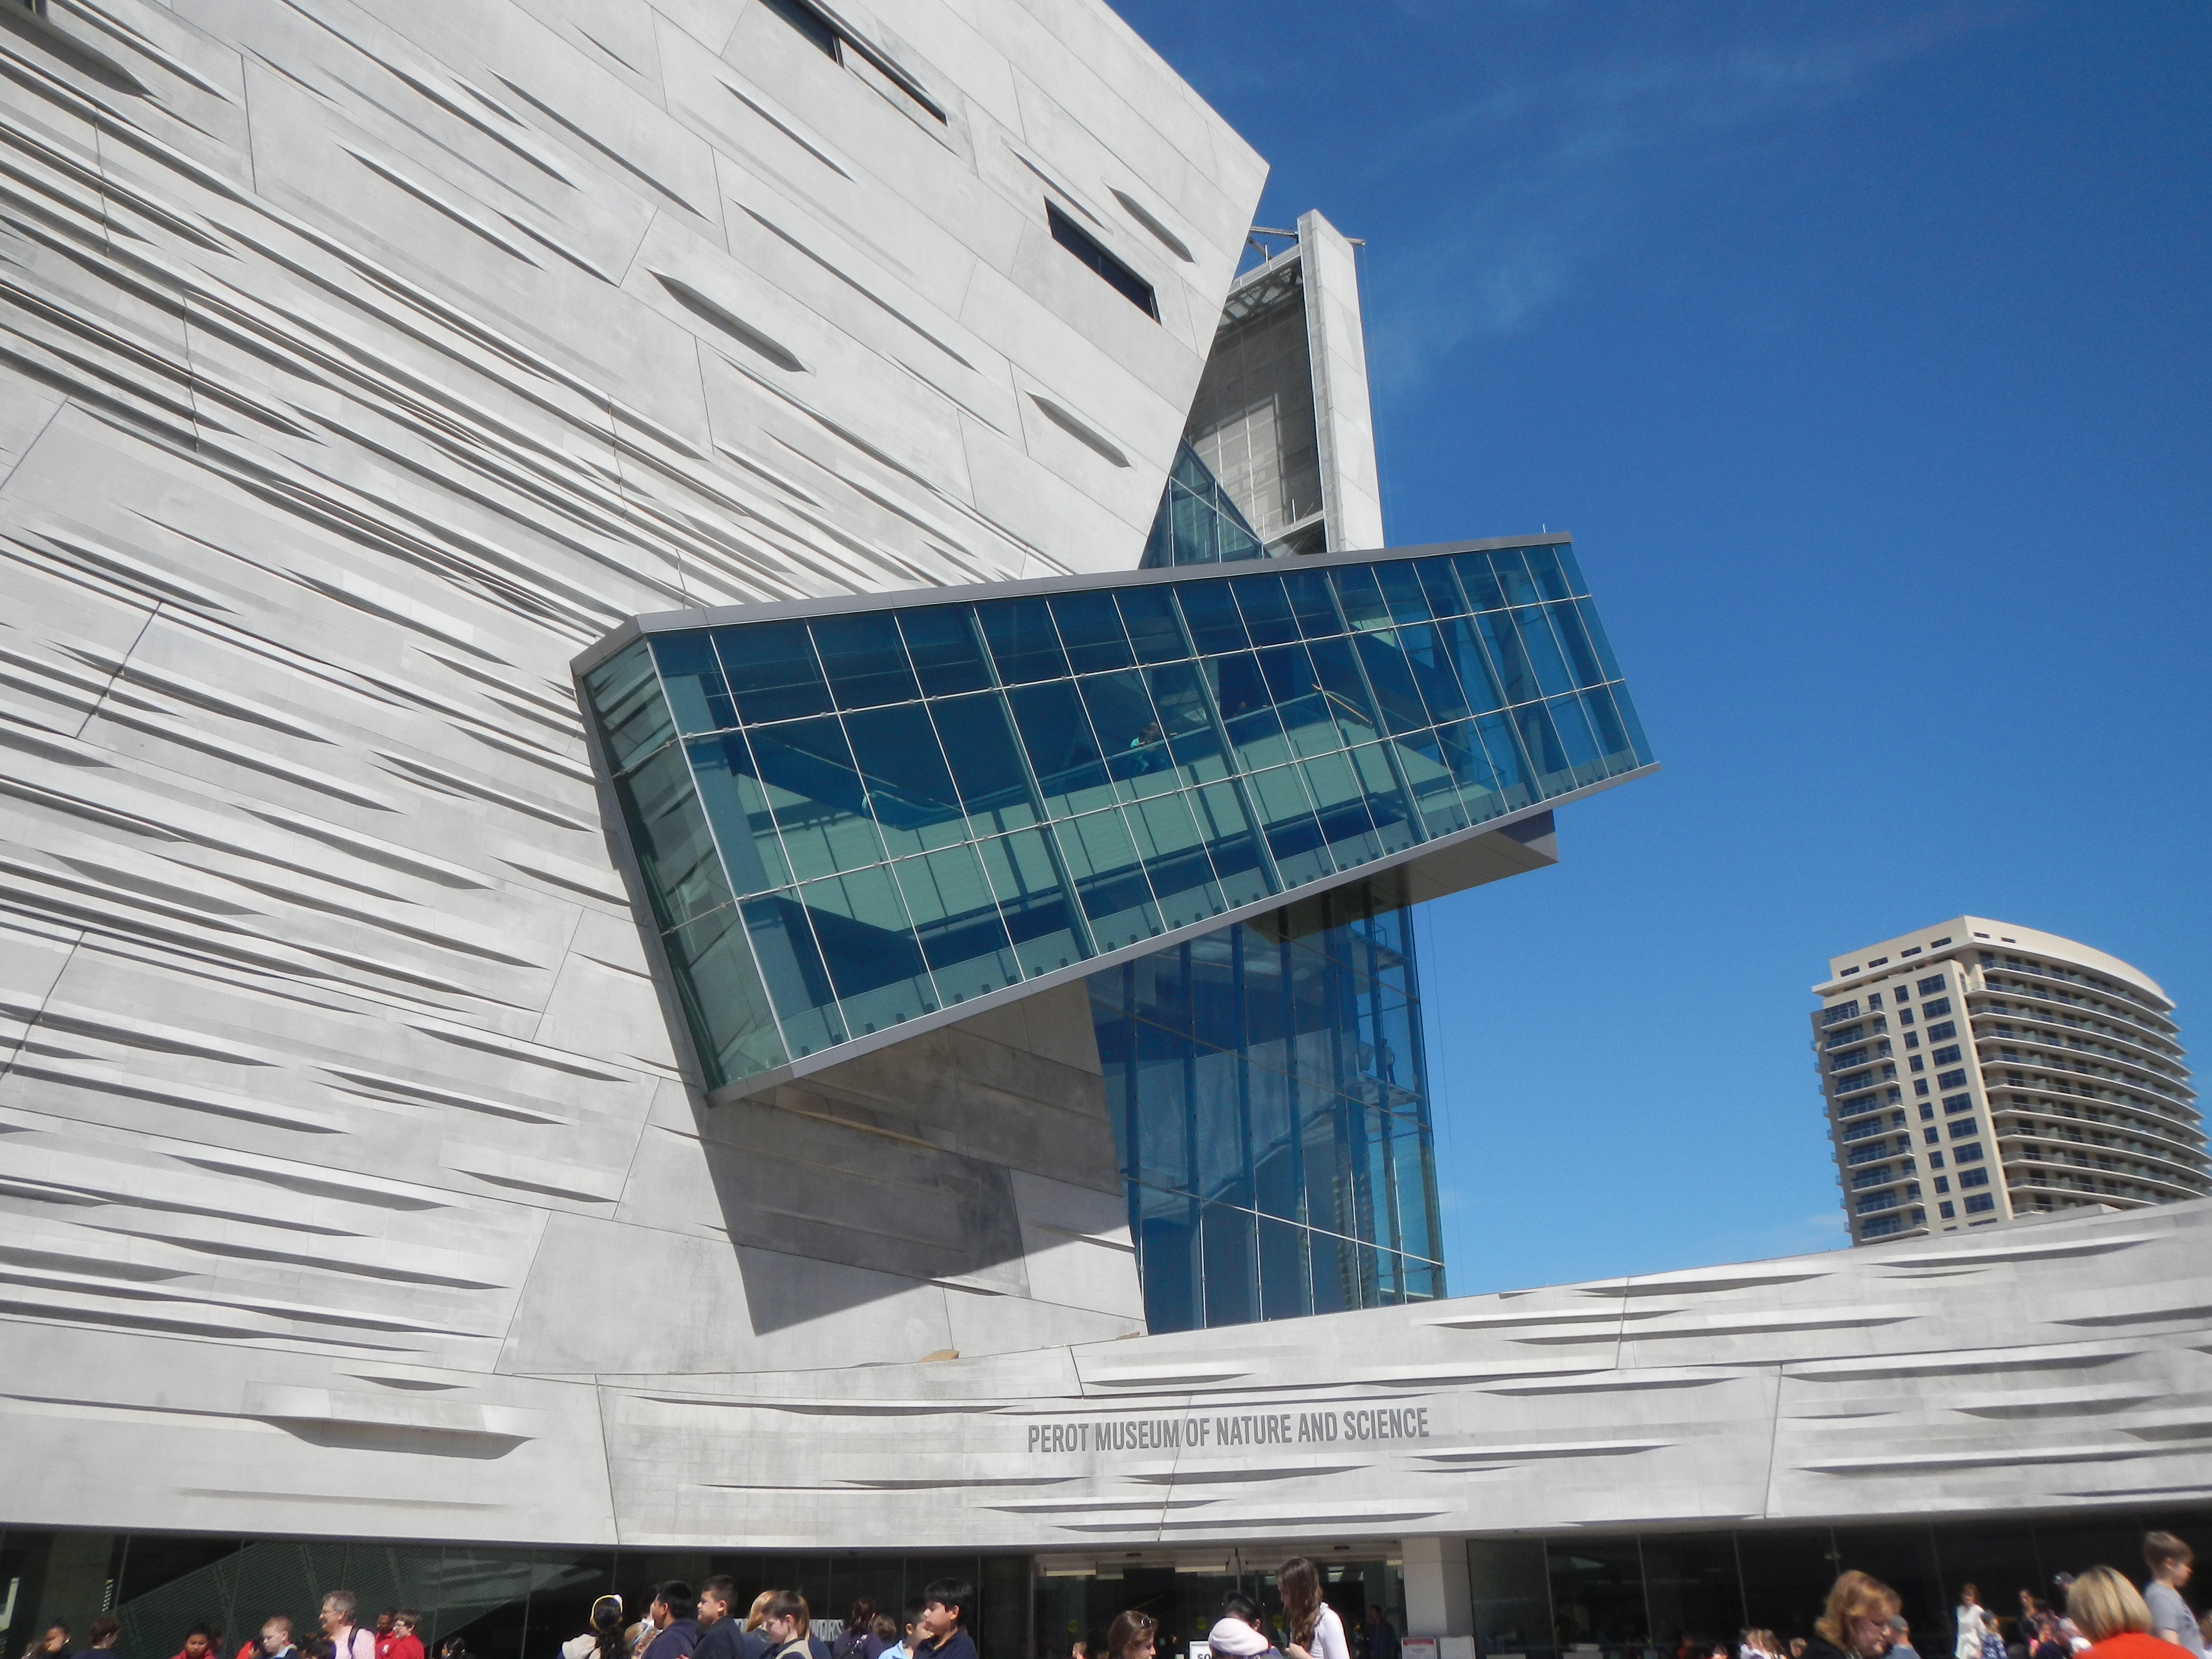 Ross Perot Museum Of Nature And Science